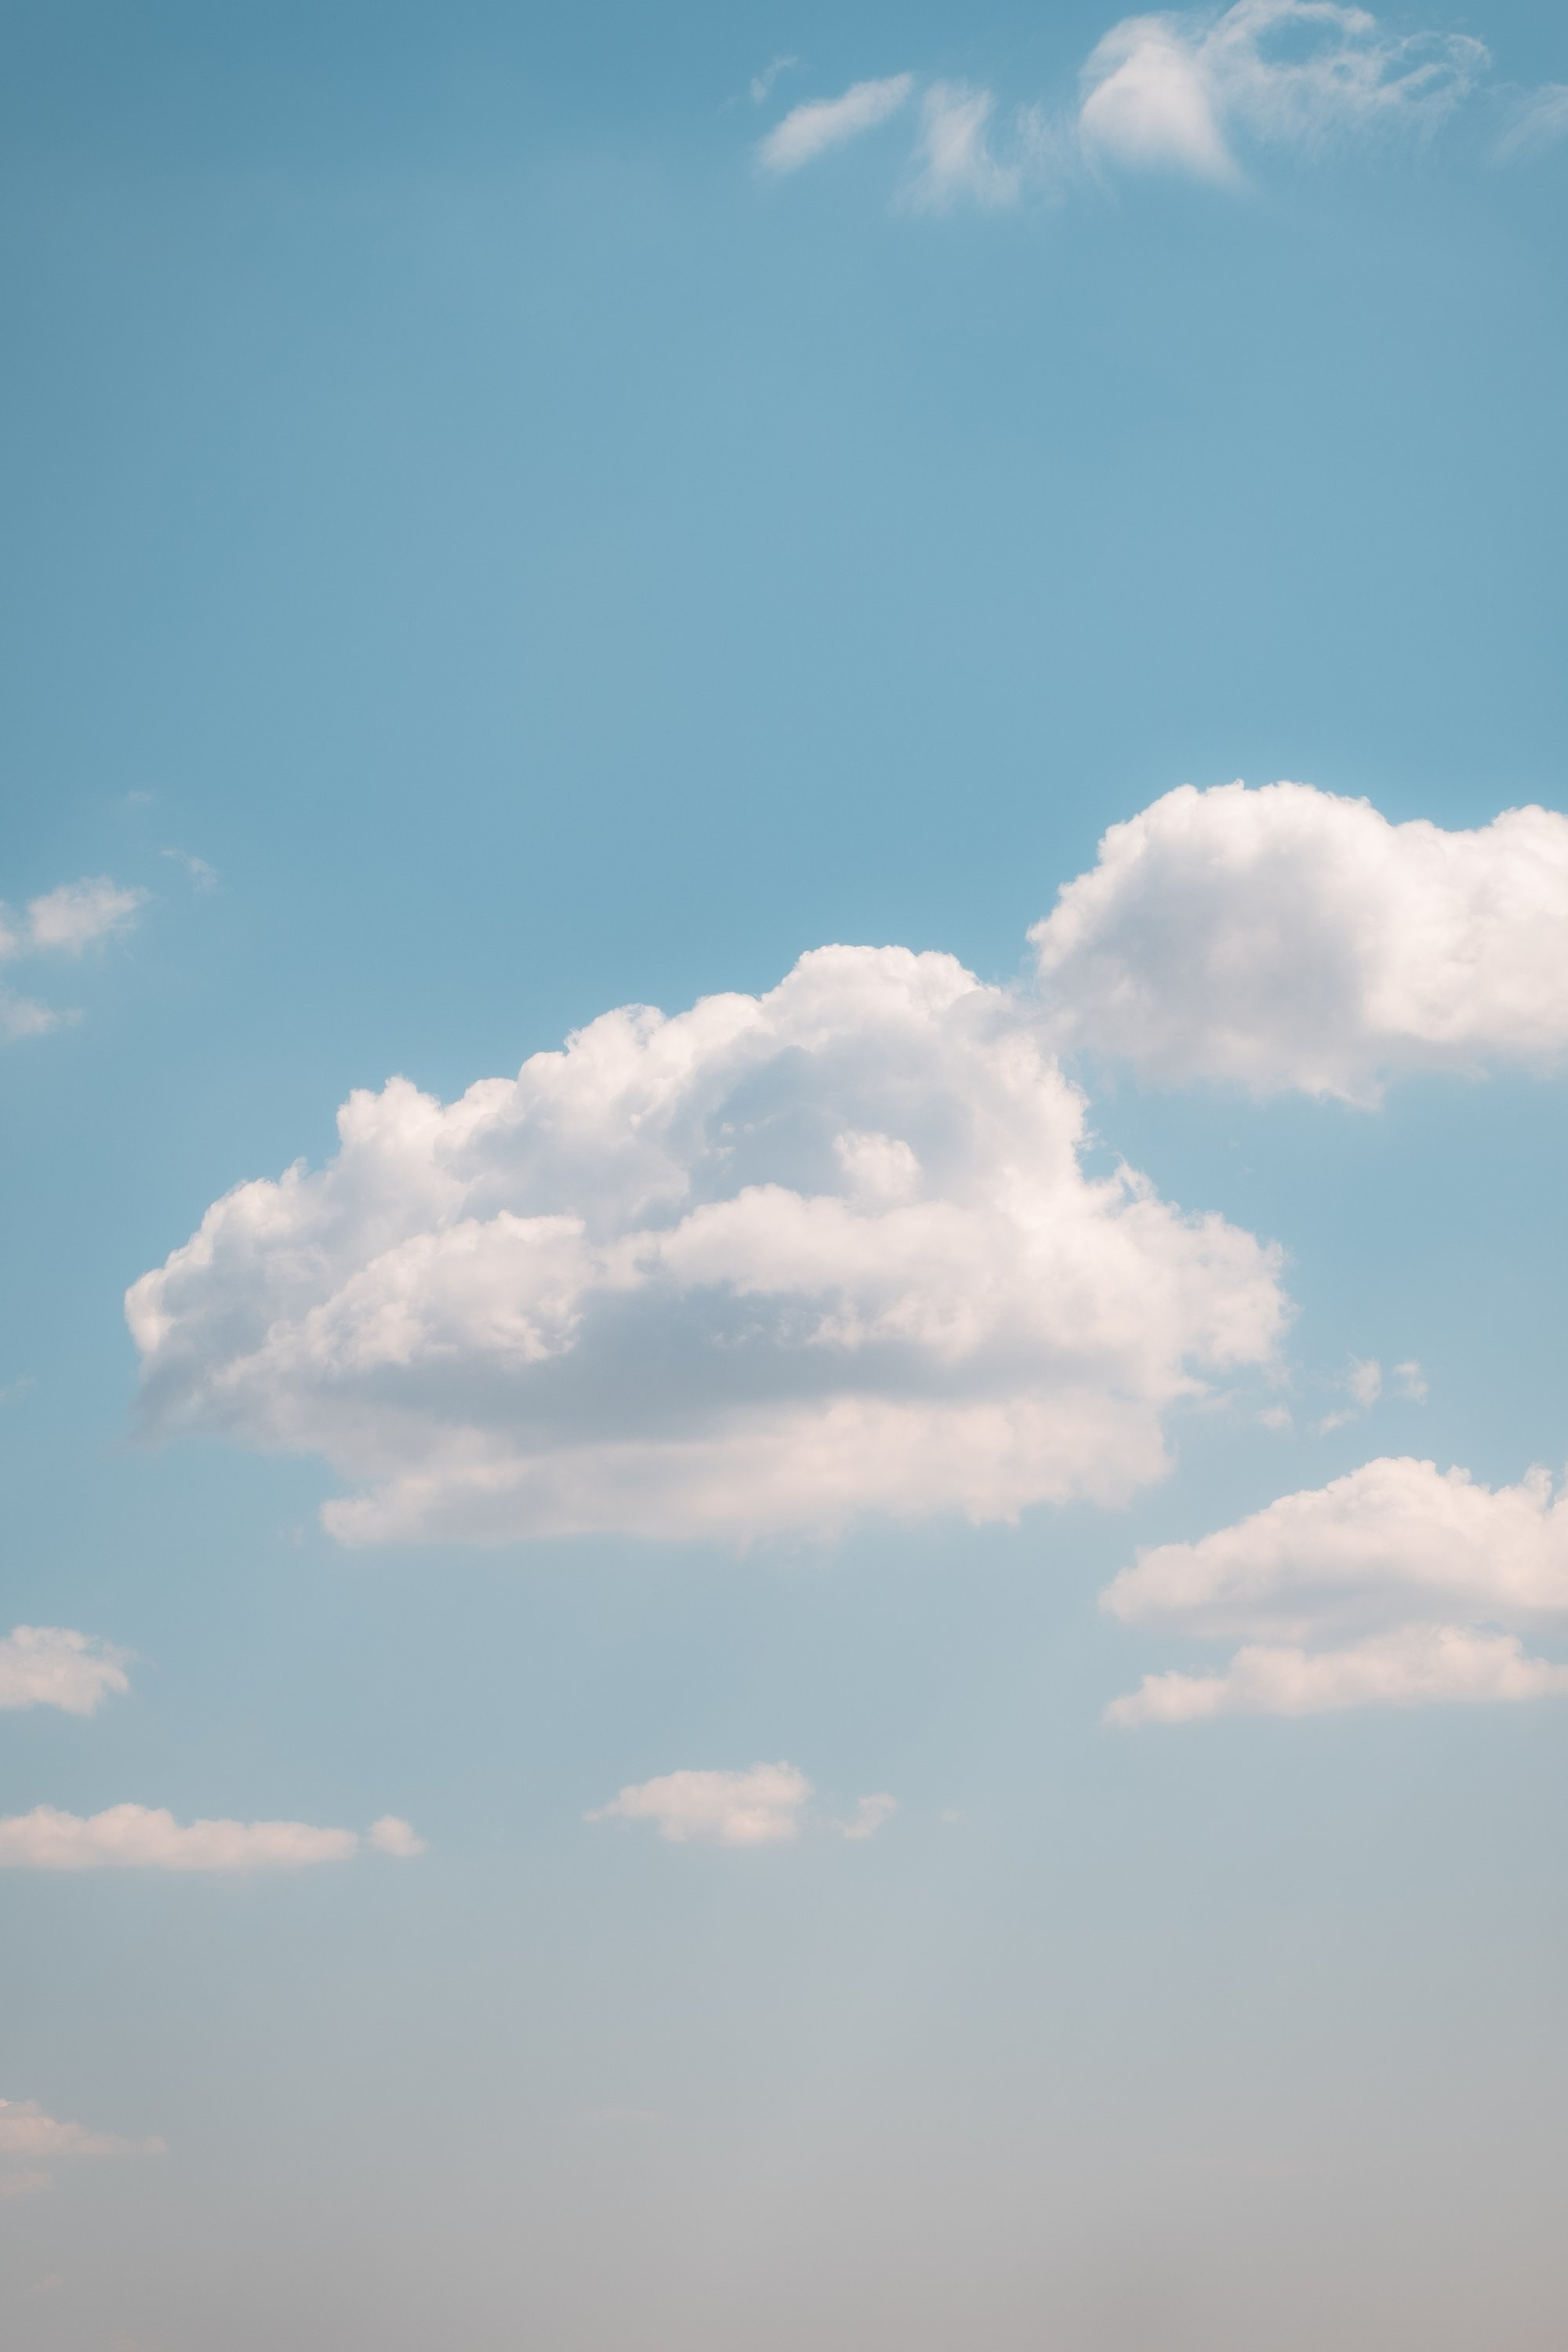 fluffy clouds in a light blue sky on a clear summer day 在晴朗的夏日,淡蓝色天空中的蓬松云